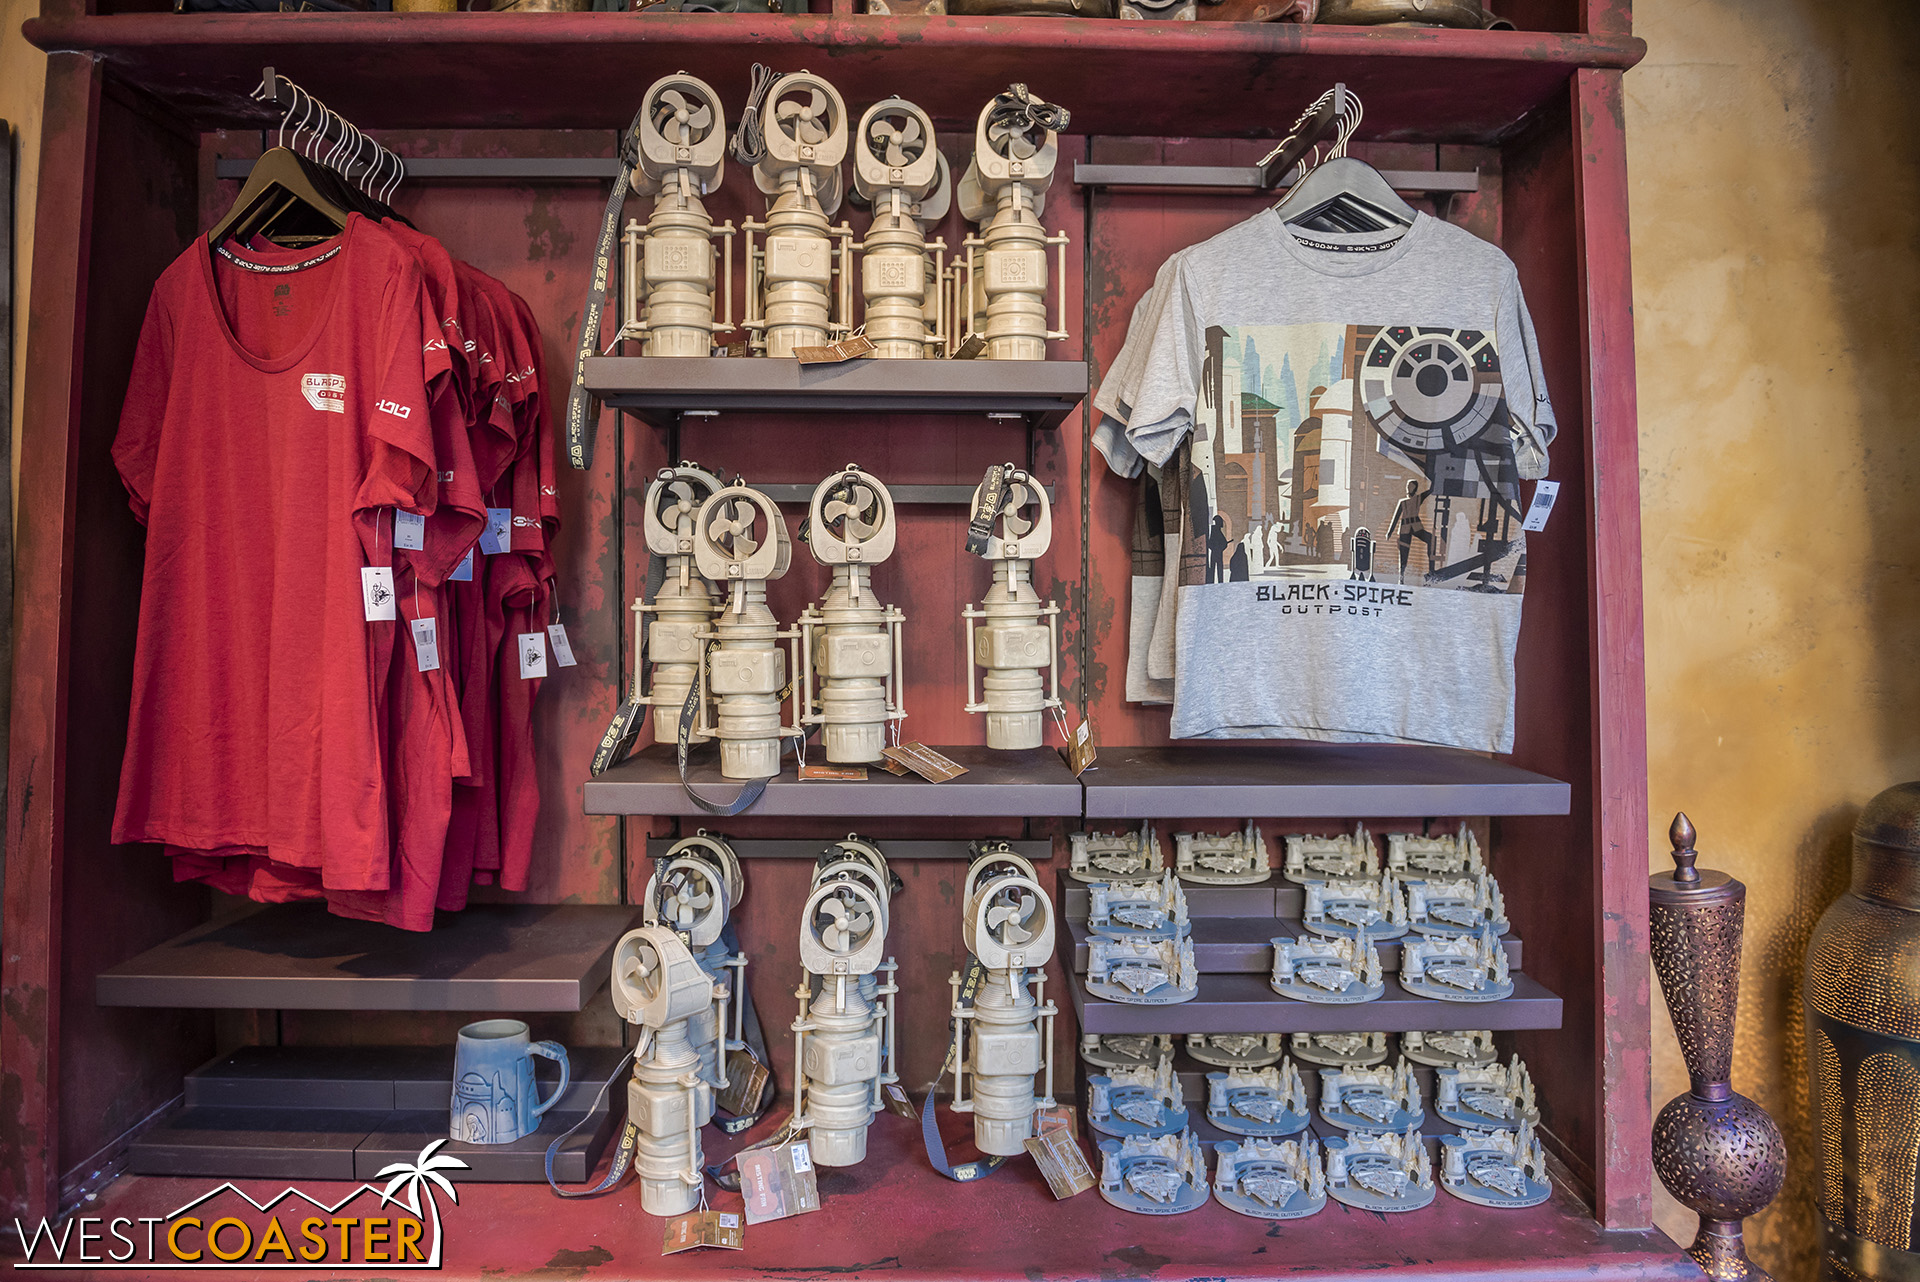 Some merchandise at Jewels of Bith.  The Batuu paperweight ornament on the lower left is pretty neat.